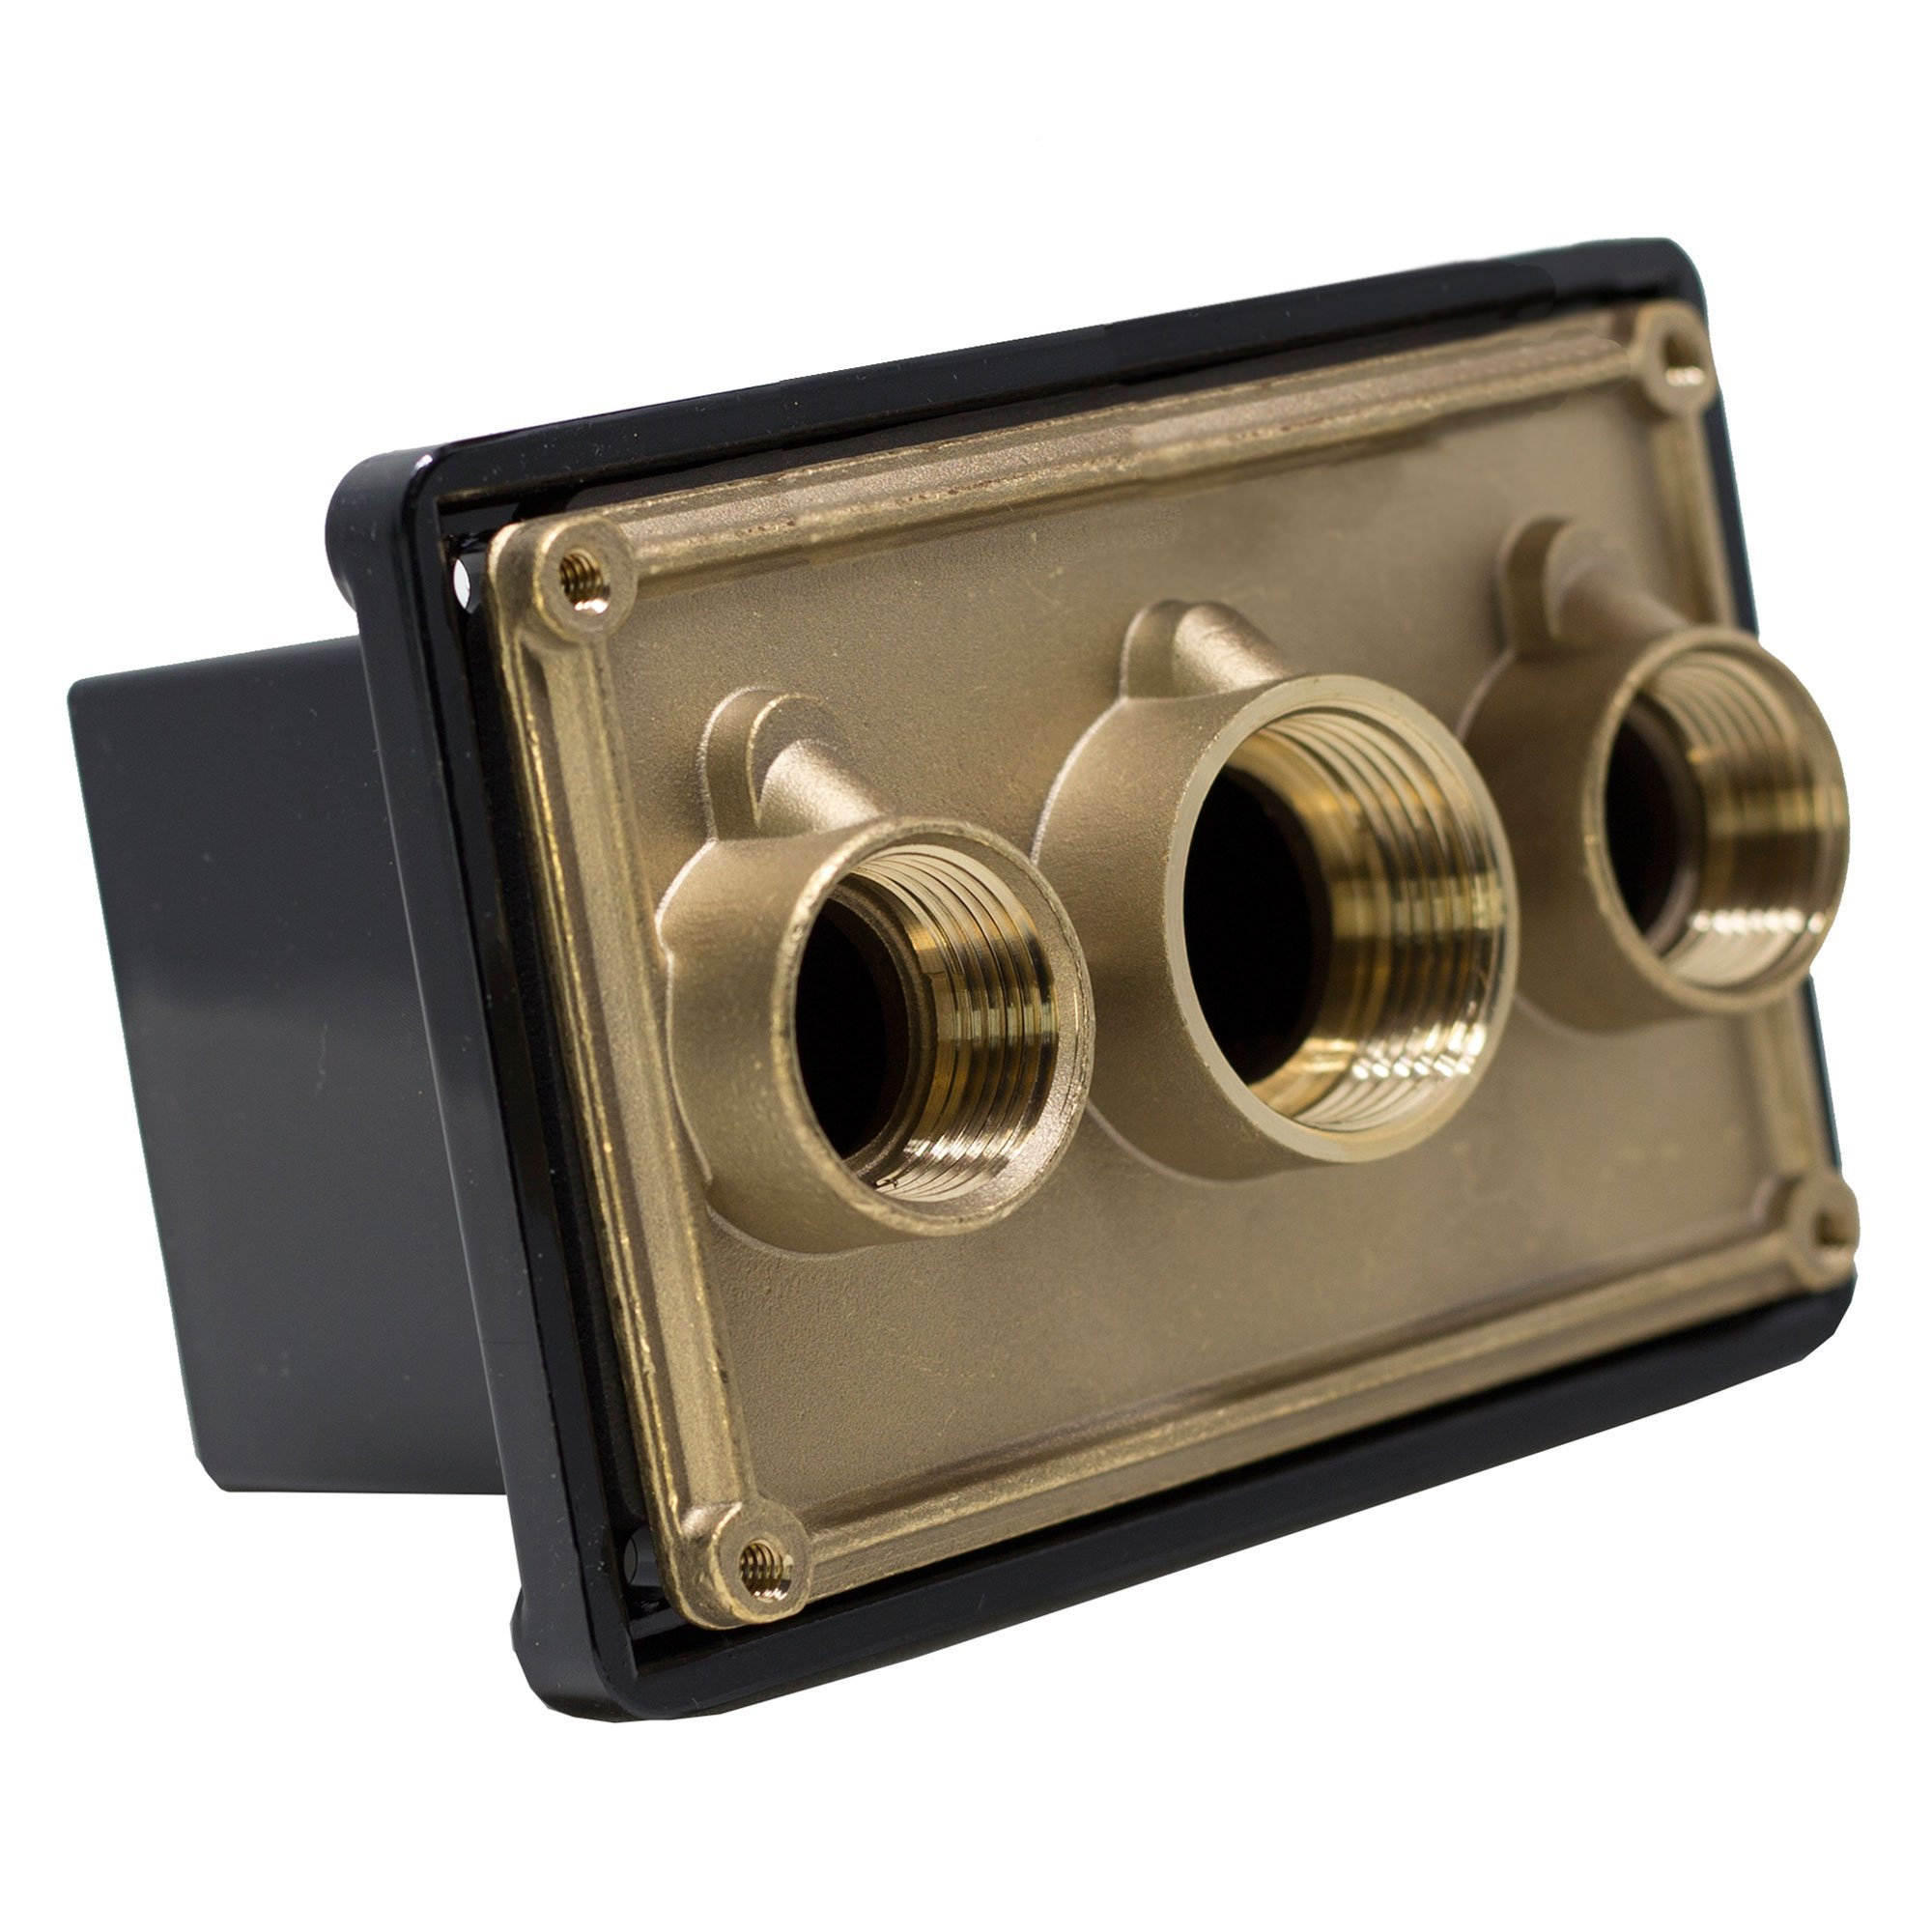 Pentair 78310700 1-Inch Black Junction Box Port Replacement Pool and Spa Light Systems